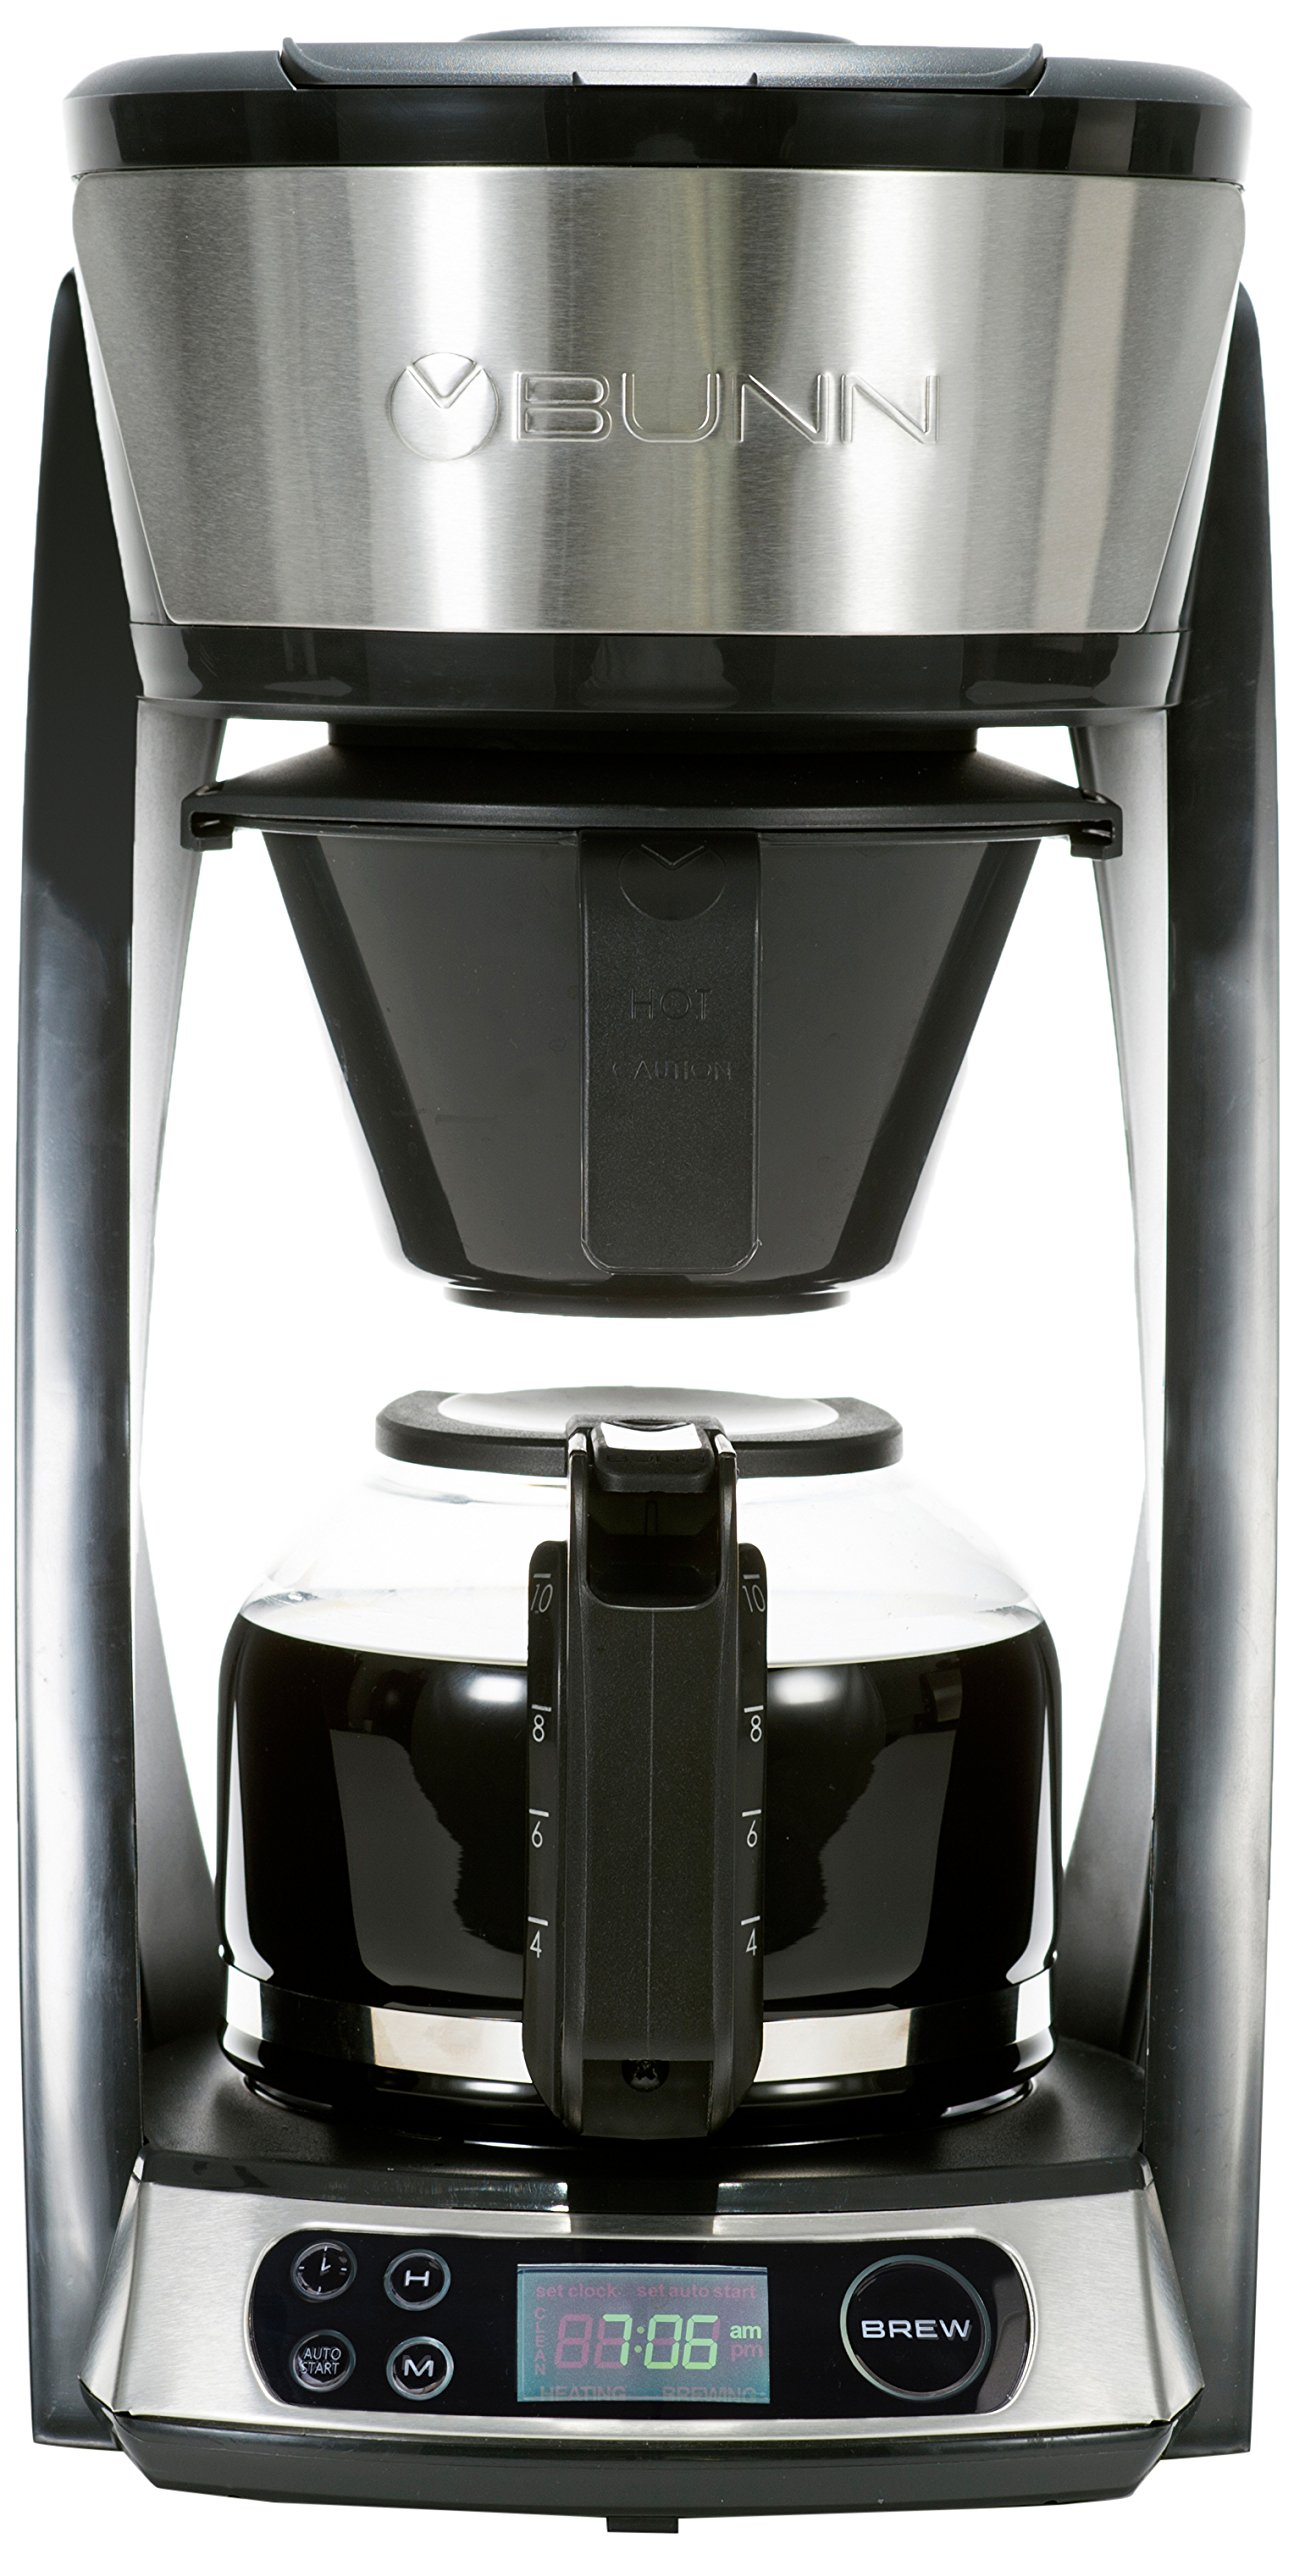 BUNN HB Heat N Brew Programmable Coffee Maker 10 cup Stainless Steel by BUNN (Image #1)